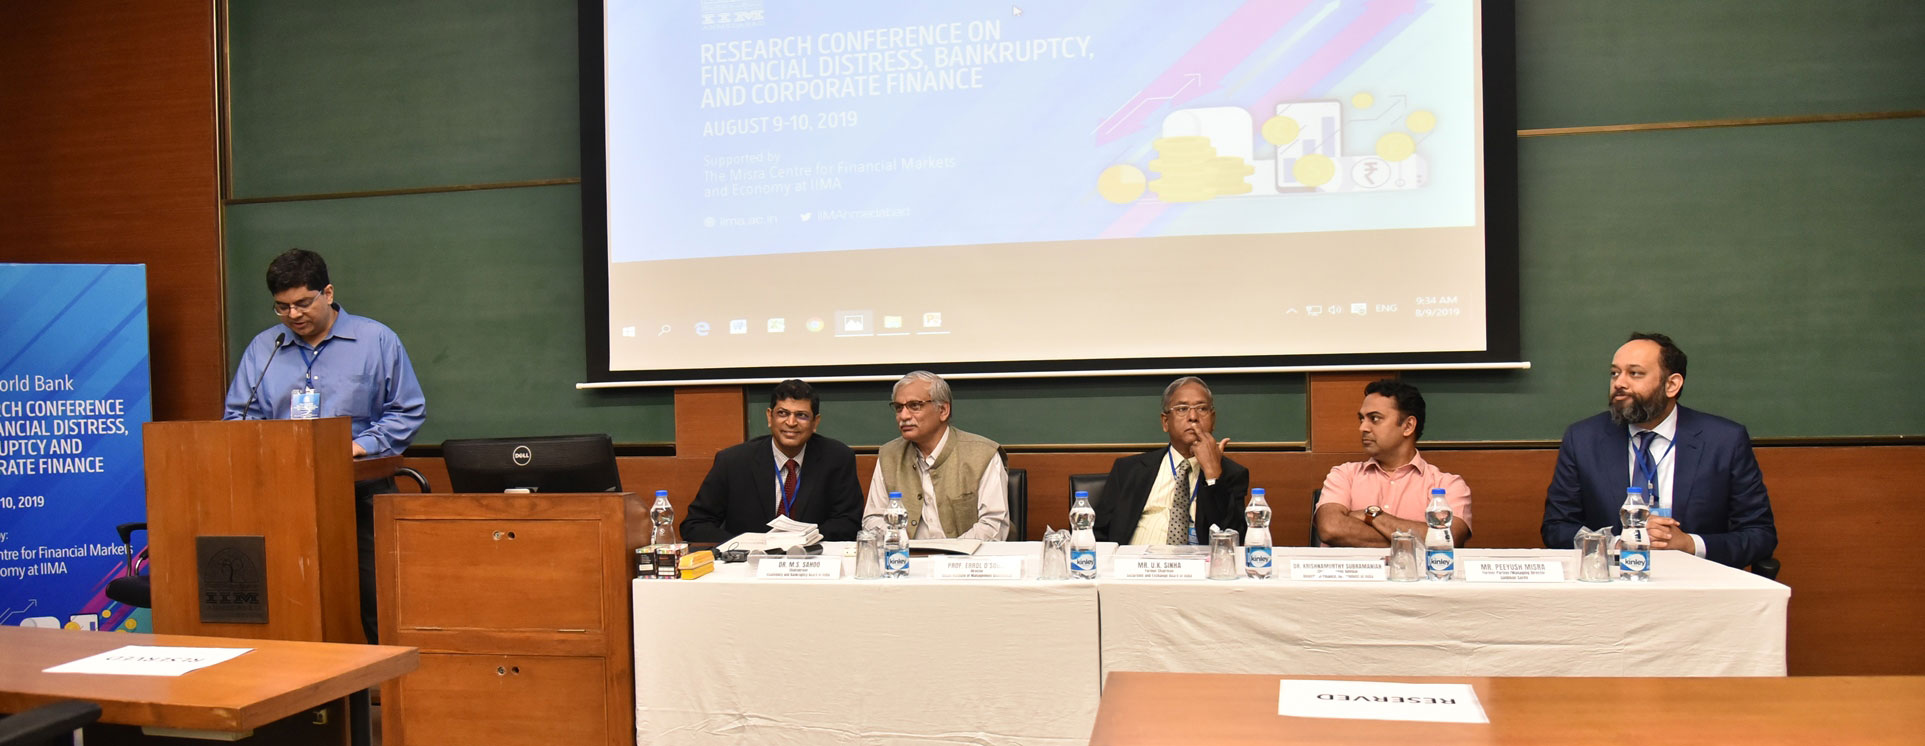 Misra Centre, IIMA and the World Bank jointly organised the conference on Financial Distress, Bankruptcy, and Corporate Finance.  Prof. Sanket Mohapatra introducing the panellists (sitting from the left): Dr. M.S. Sahoo (Chairperson, Insolvency and Bankruptcy Board of India);  Prof. Errol D'Souza (Director, IIM Ahmedabad); Mr. U.K. Sinha (Former Chairman, Securities and Exchange Board of India); Dr. Krishnamurthy Subramanian (Chief Economic Advisor, Govt. of India); Mr. Peeyush Misra (Former Partner/Managing Director, Goldman Sachs).